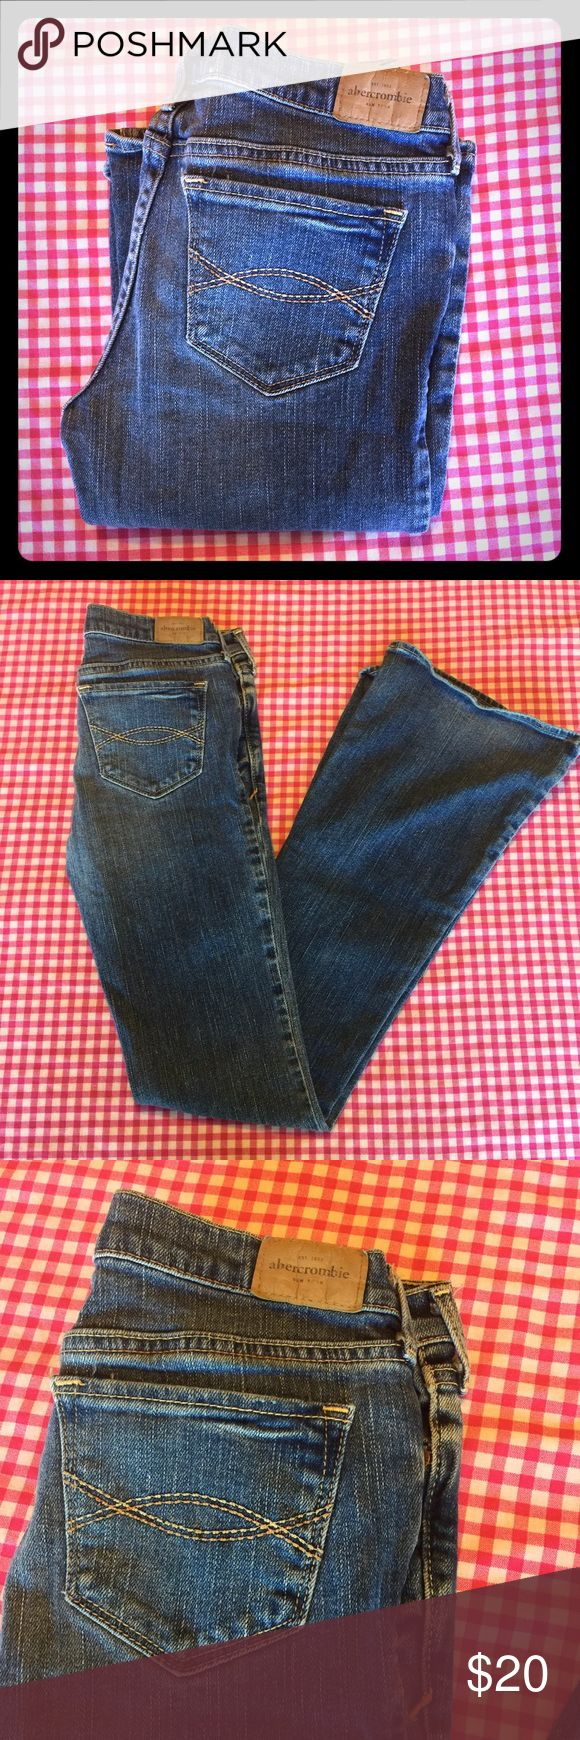 Abercrombie 🌸 Girls Cute Stretch Flare Jeans Abercrombie 🌸 Girls Cute Stretch Flare Jeans, Med Blue wash, classic style, Size 16 Slim, Waist laying flat- 13 inches, rise- 6.5 inches, inseam- 31 inches. In great used condition monitor signs of wear. Little rub on the bottoms. Abercombie Kids Bottoms Jeans